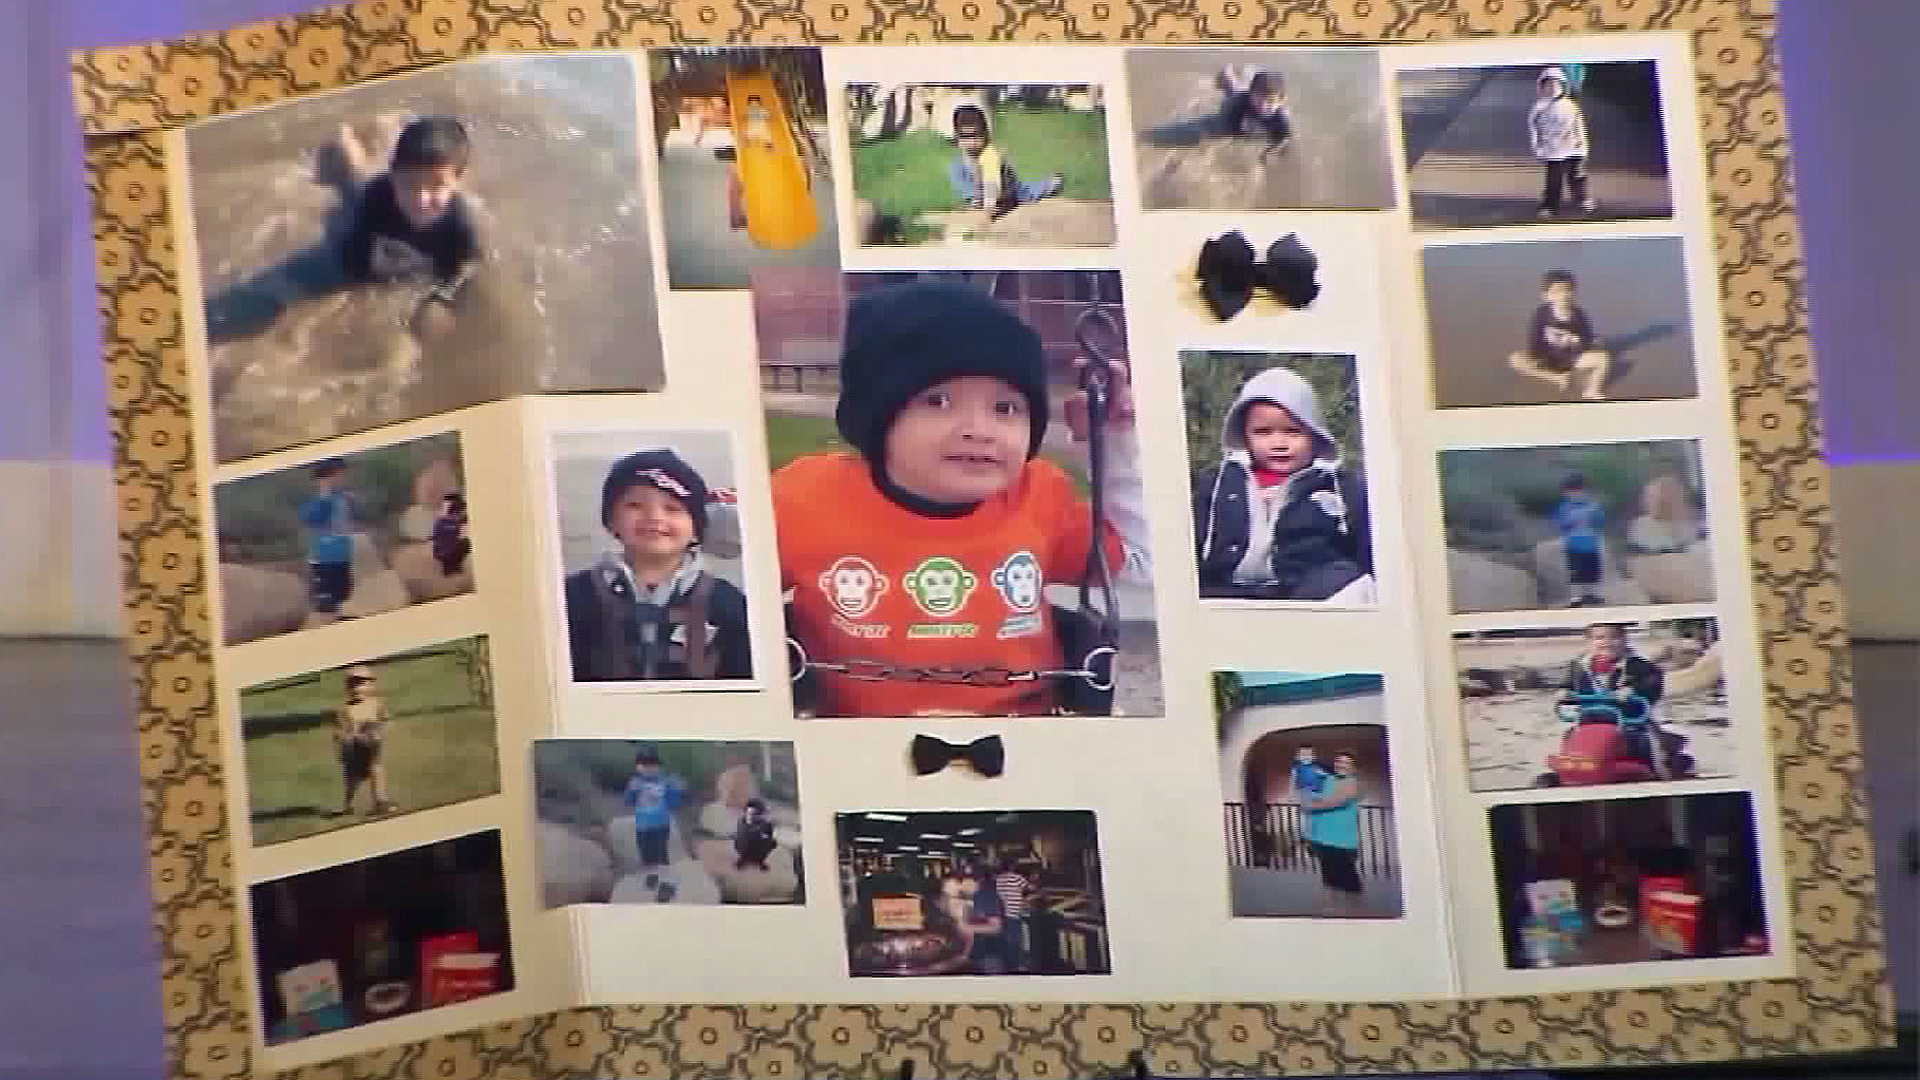 Pictures of Yonatan are scene at a memorial held for him on Sept. 14, 2016. (Credit: KTLA)